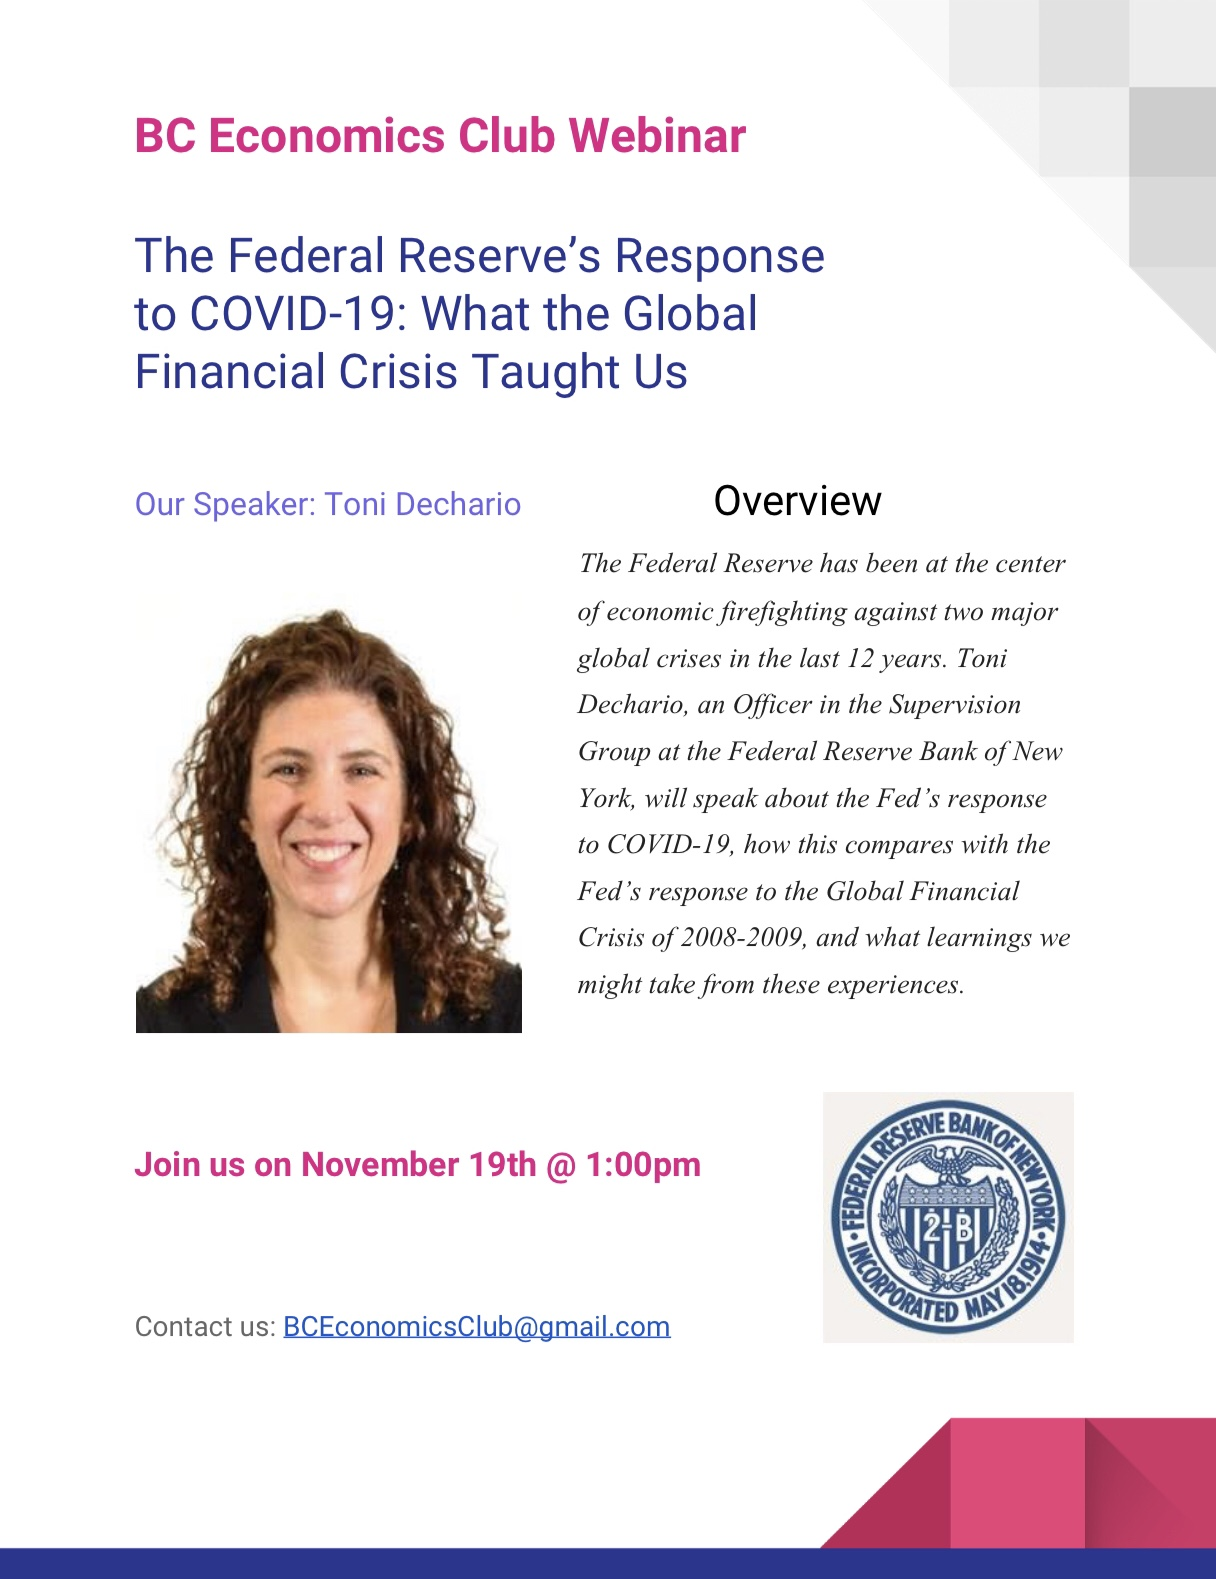 Webinar - The Federal Reserve's Response to COVID-19: What the Global Financial Crisis Taught Us with Toni Dechario